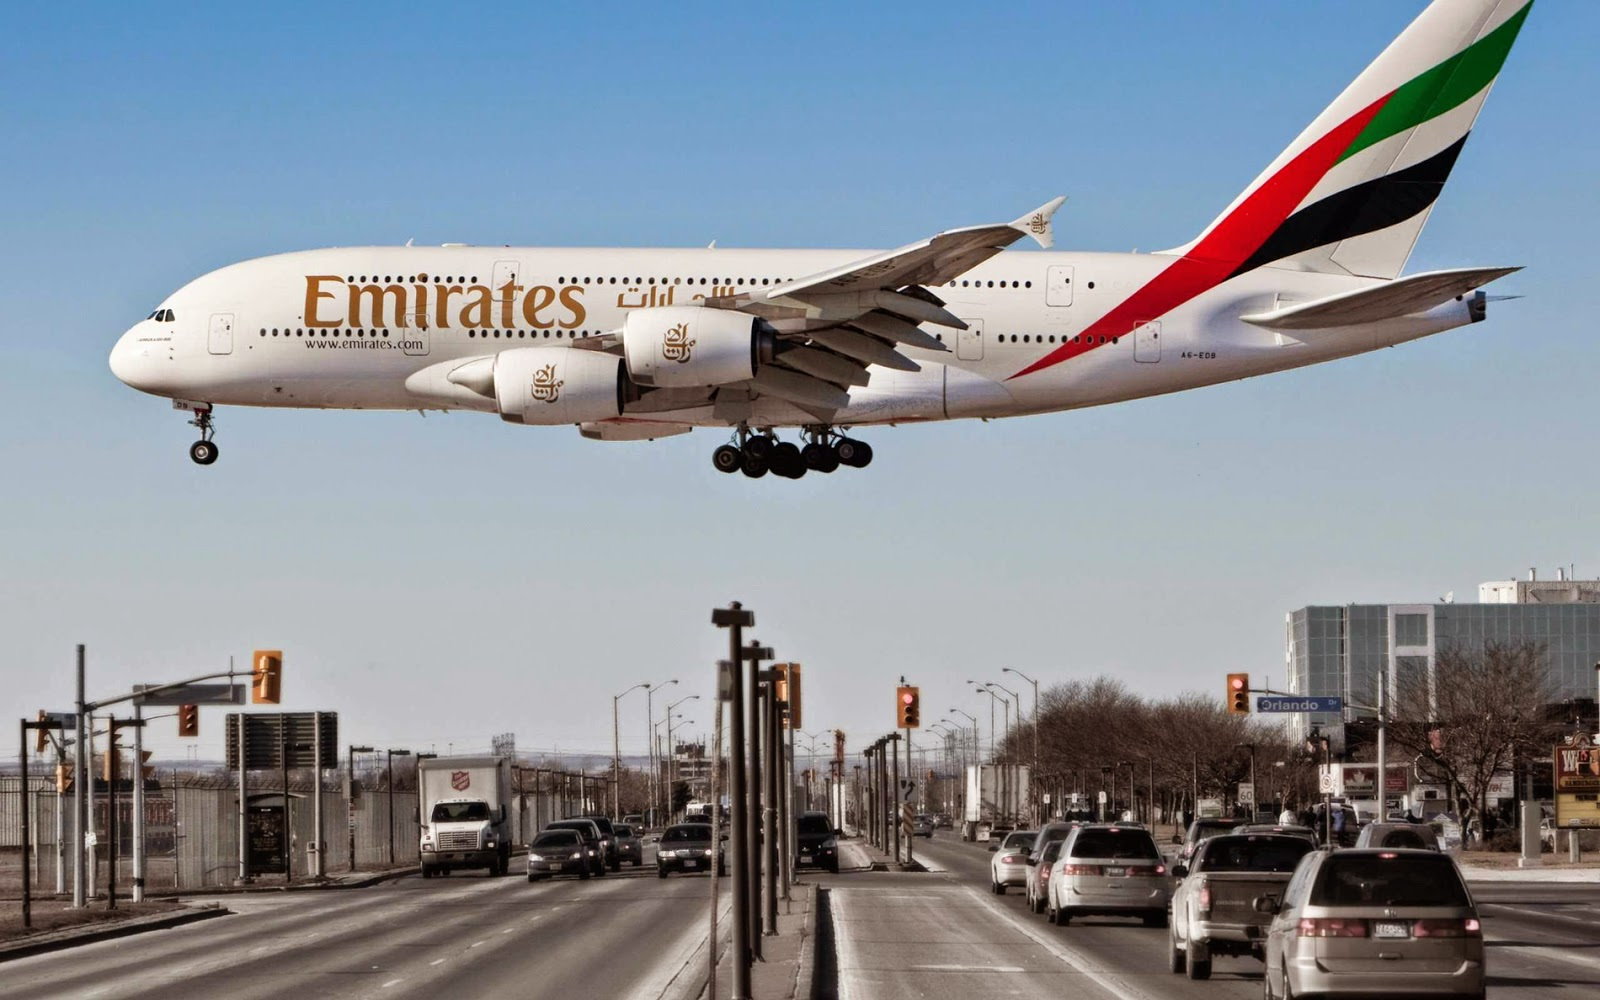 Emirates Airline New 2014 Wallpapers